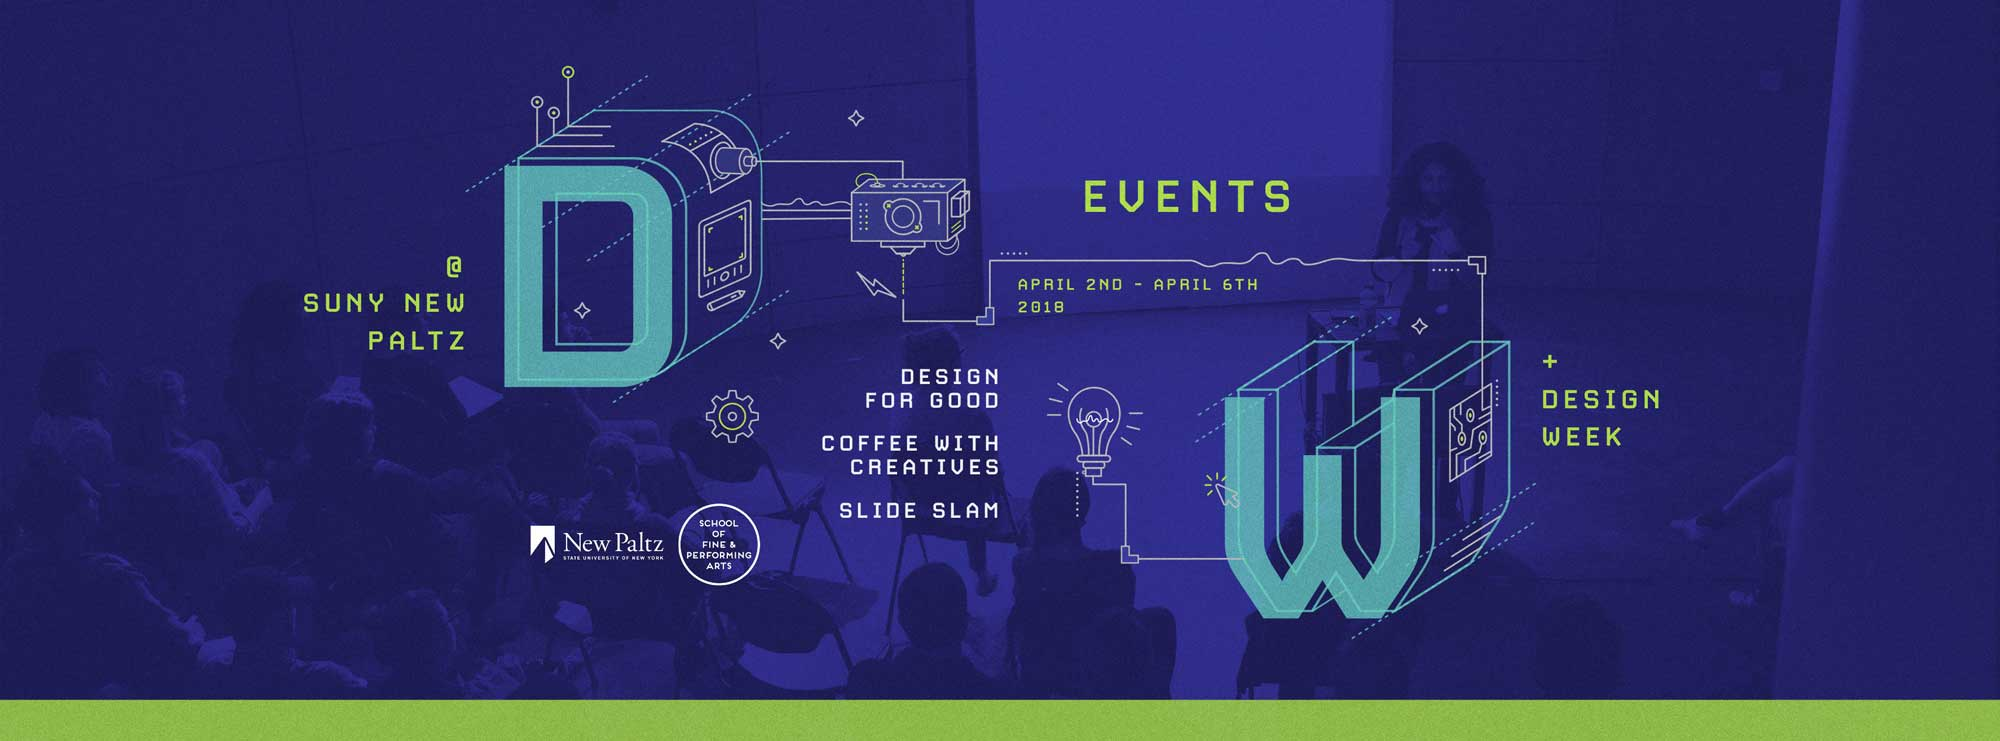 illustrated banner promoting events for Design Week 2018